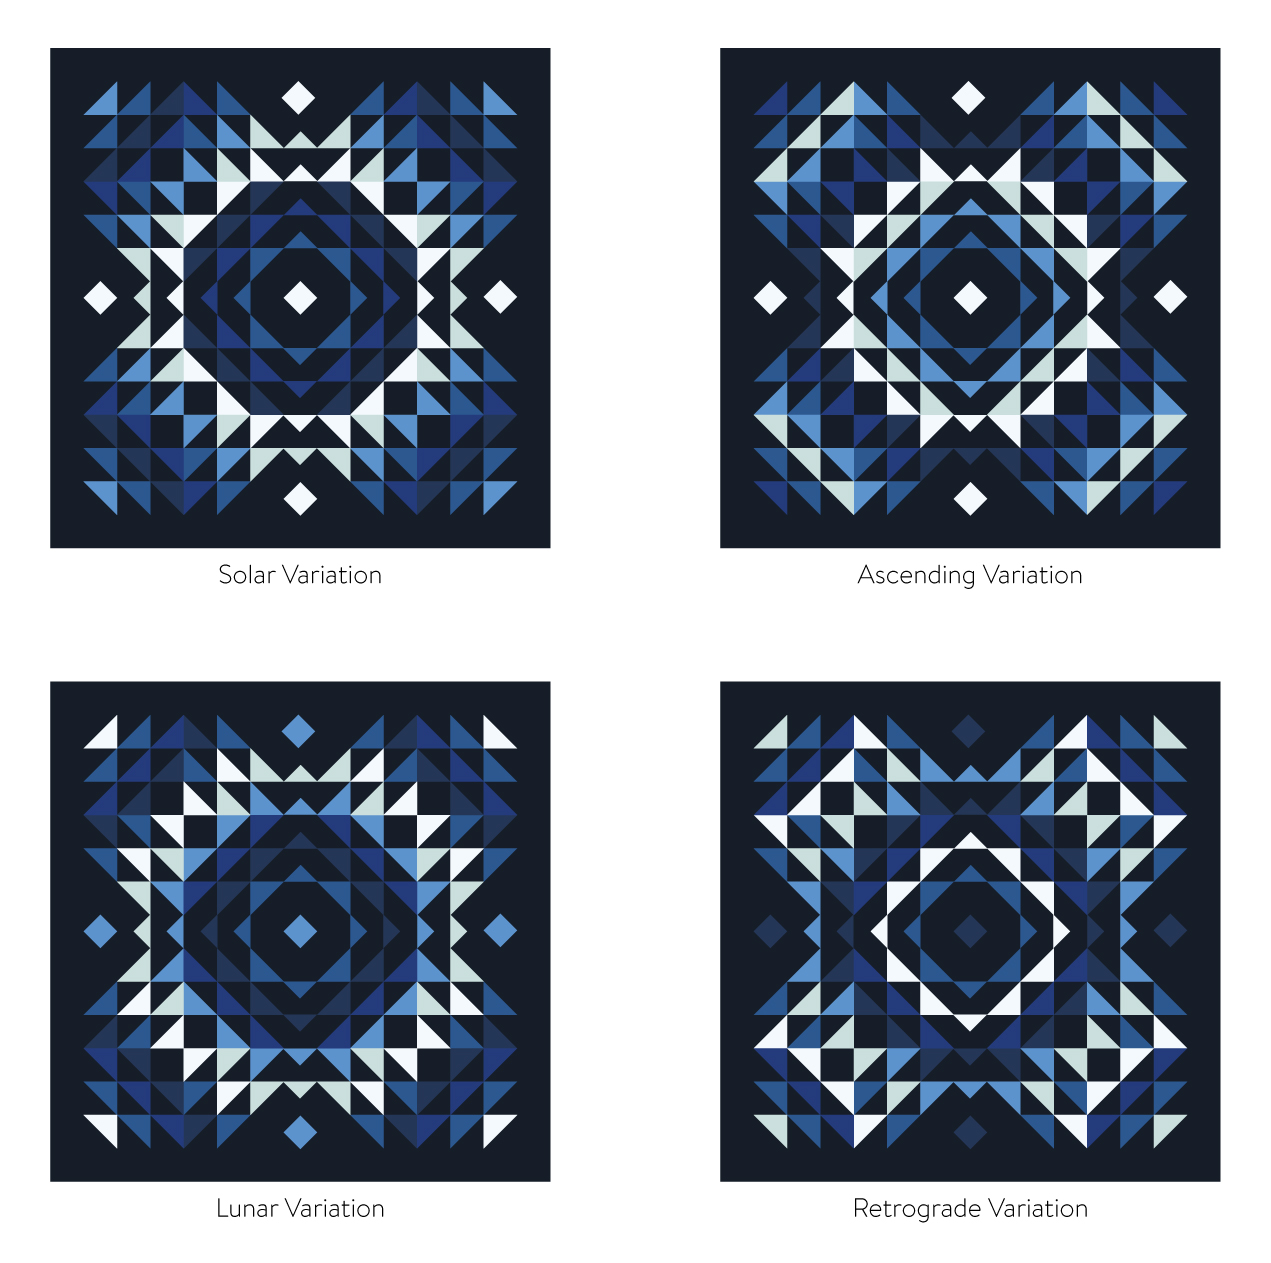 Gradient Variations for the Totality Quilt